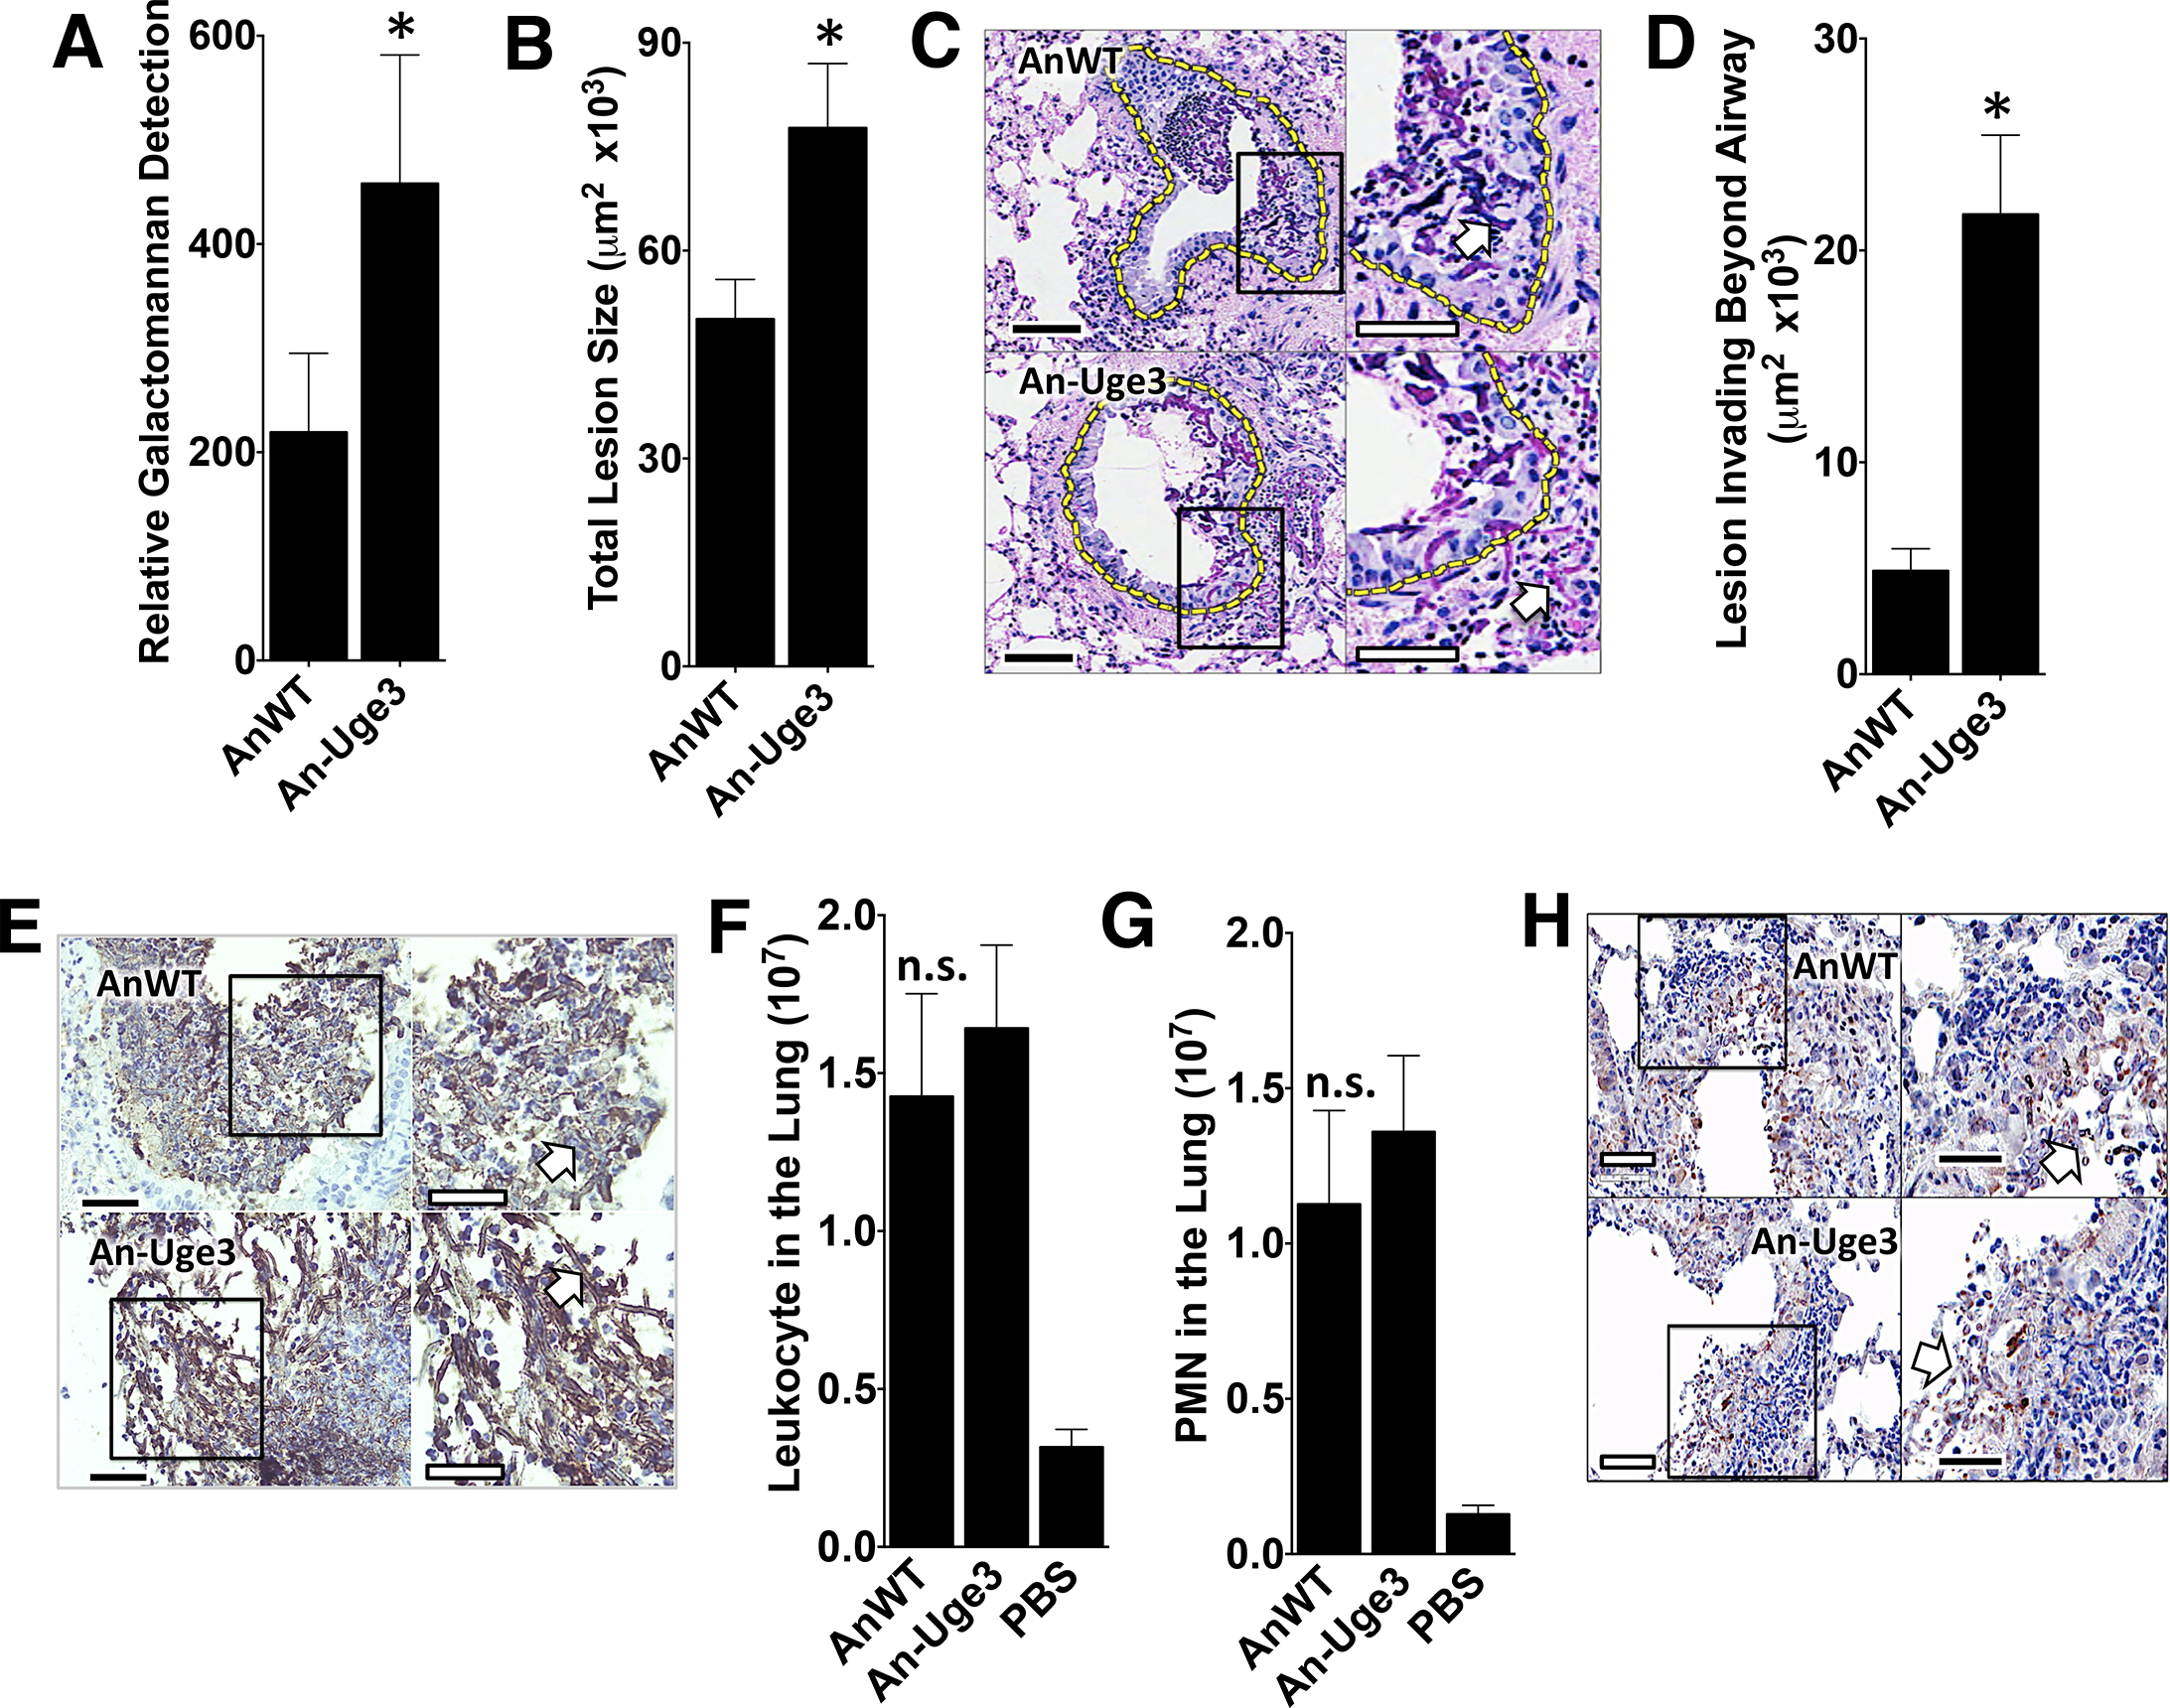 Increase in virulence of the <i>A</i>. <i>nidulans</i> strain overexpressing <i>uge3</i> is associated with increase in fungal burden and pulmonary tissue invasion.